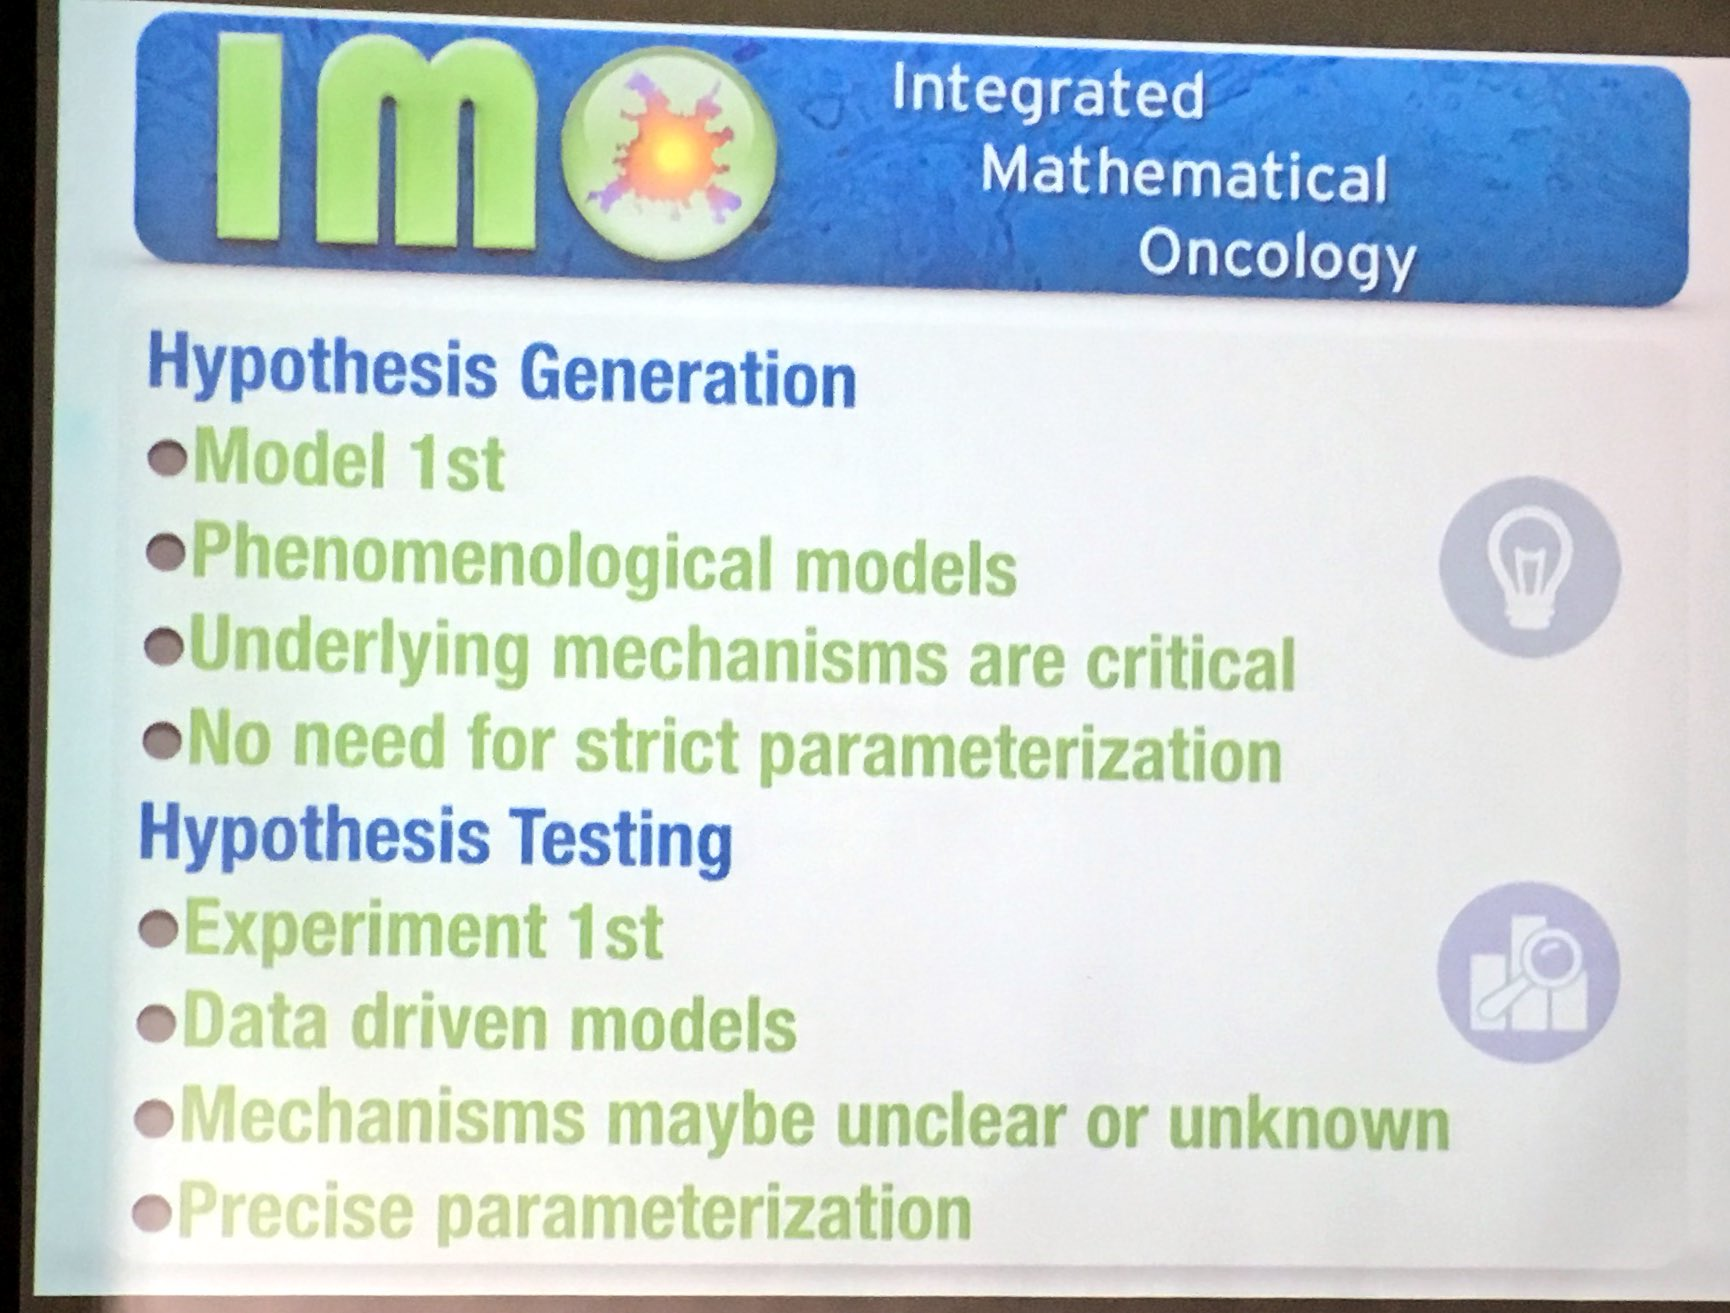 .@ara_anderson sums up role of #mathonco : H generation (suggest expts) & H testing (explain data) #sebmsc16 https://t.co/f0gbSEiKqK